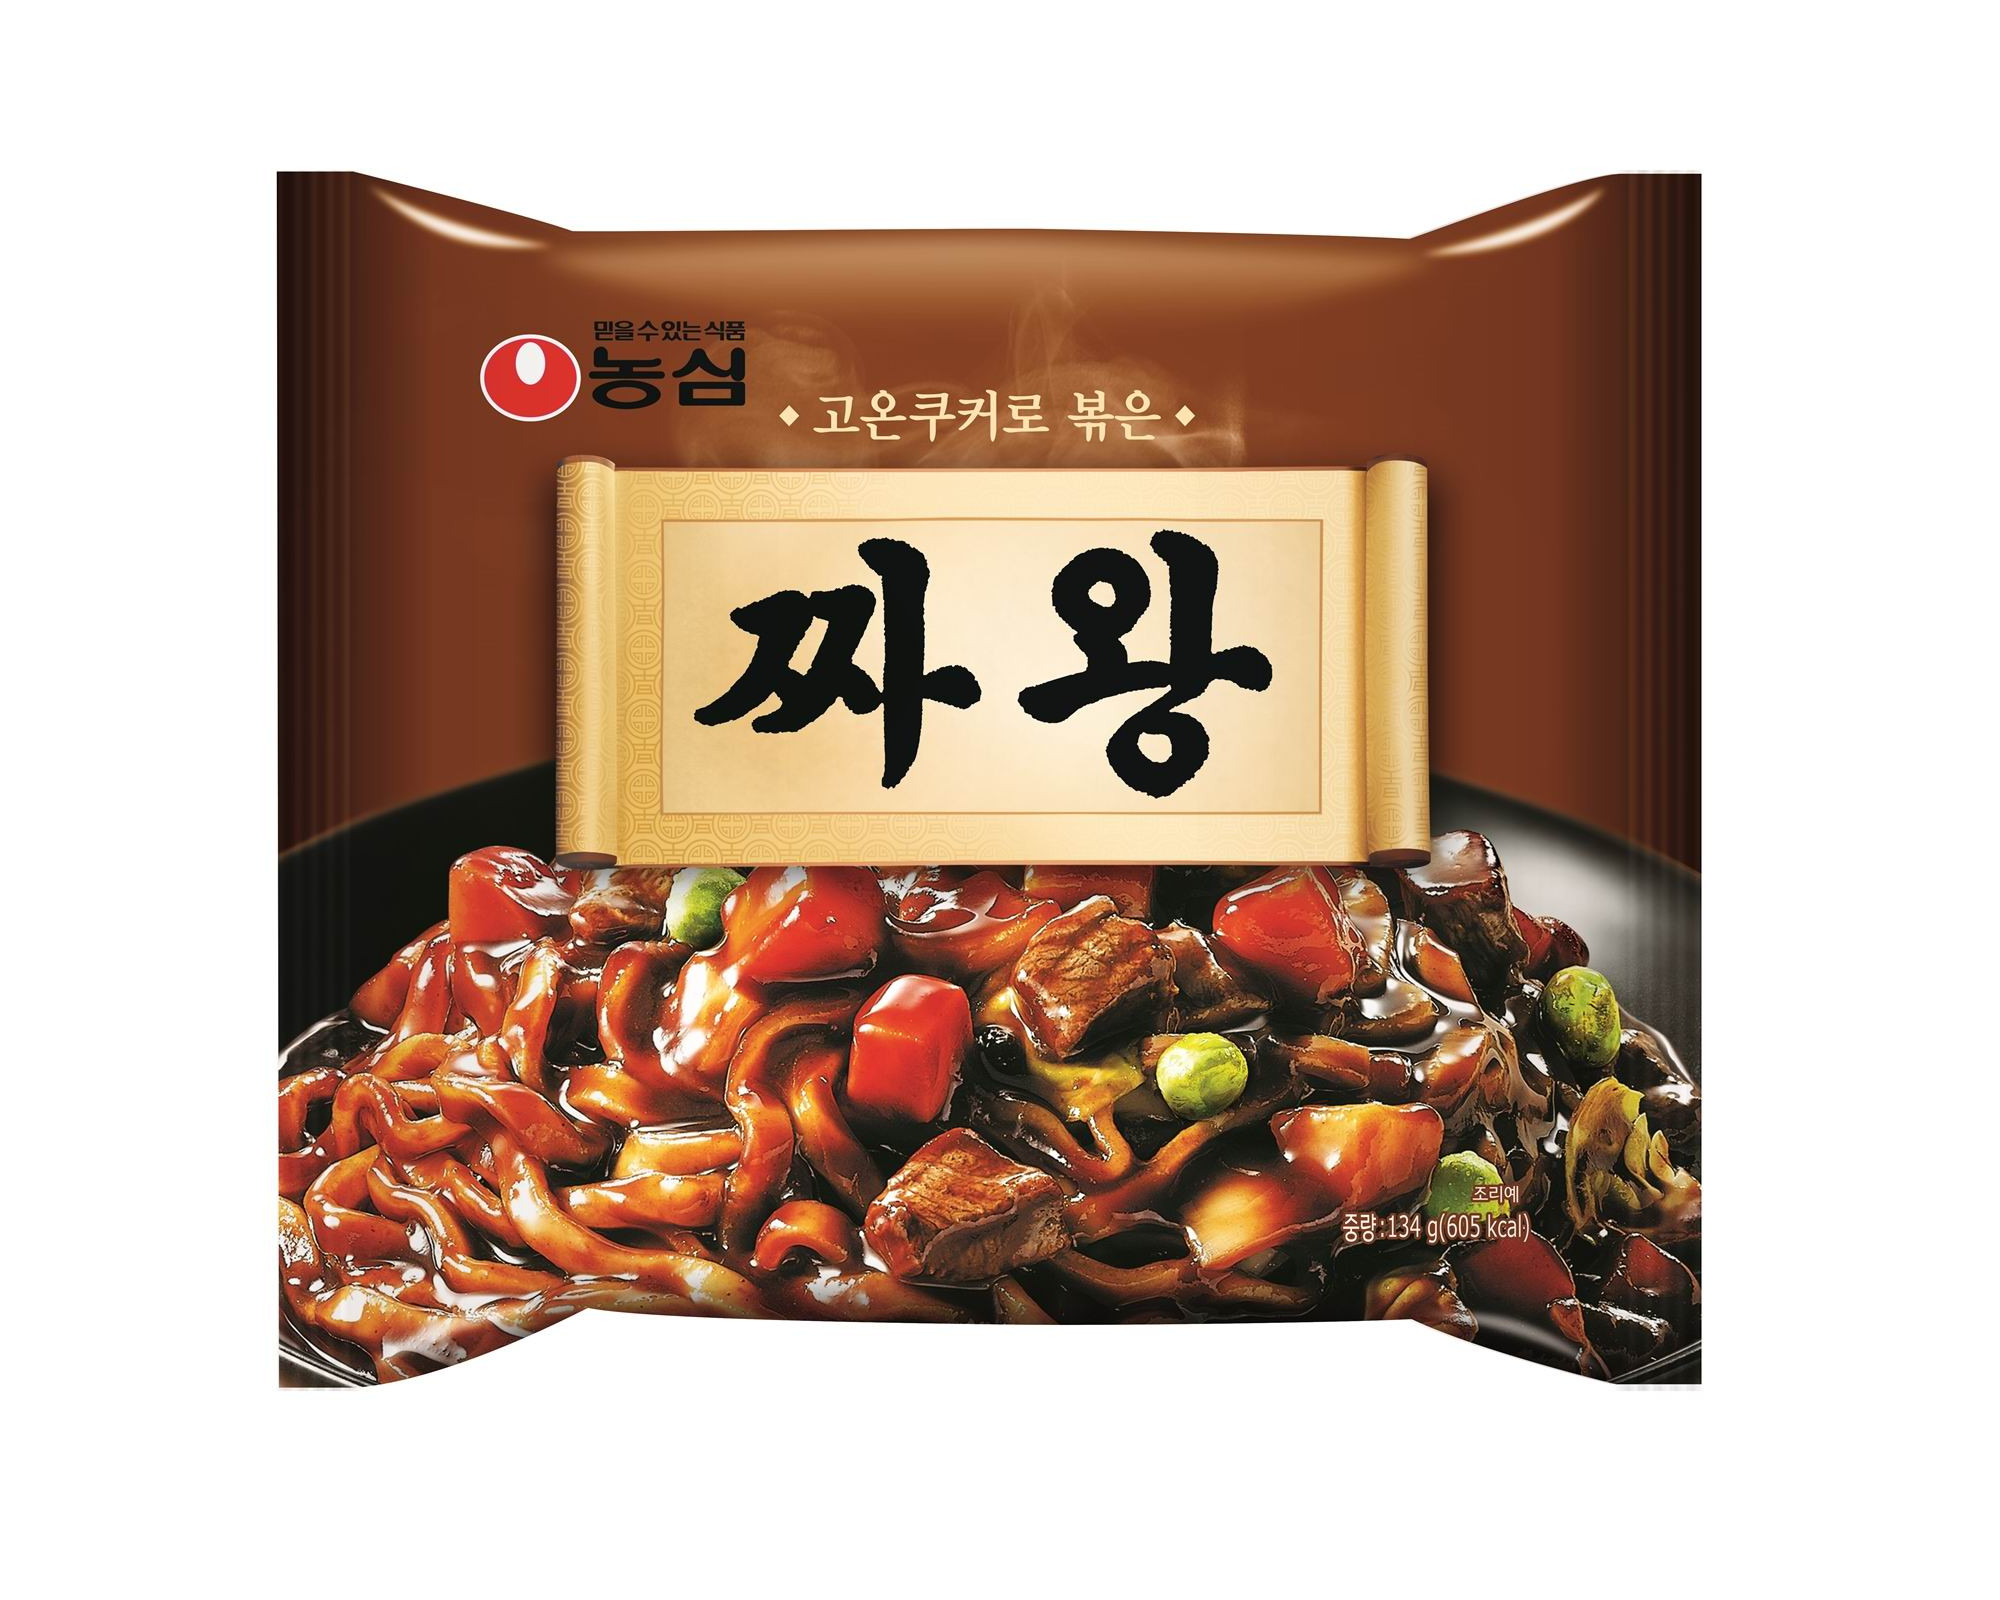 Nongshim Zha Wang best instant jjajangmyeon other competitors tested